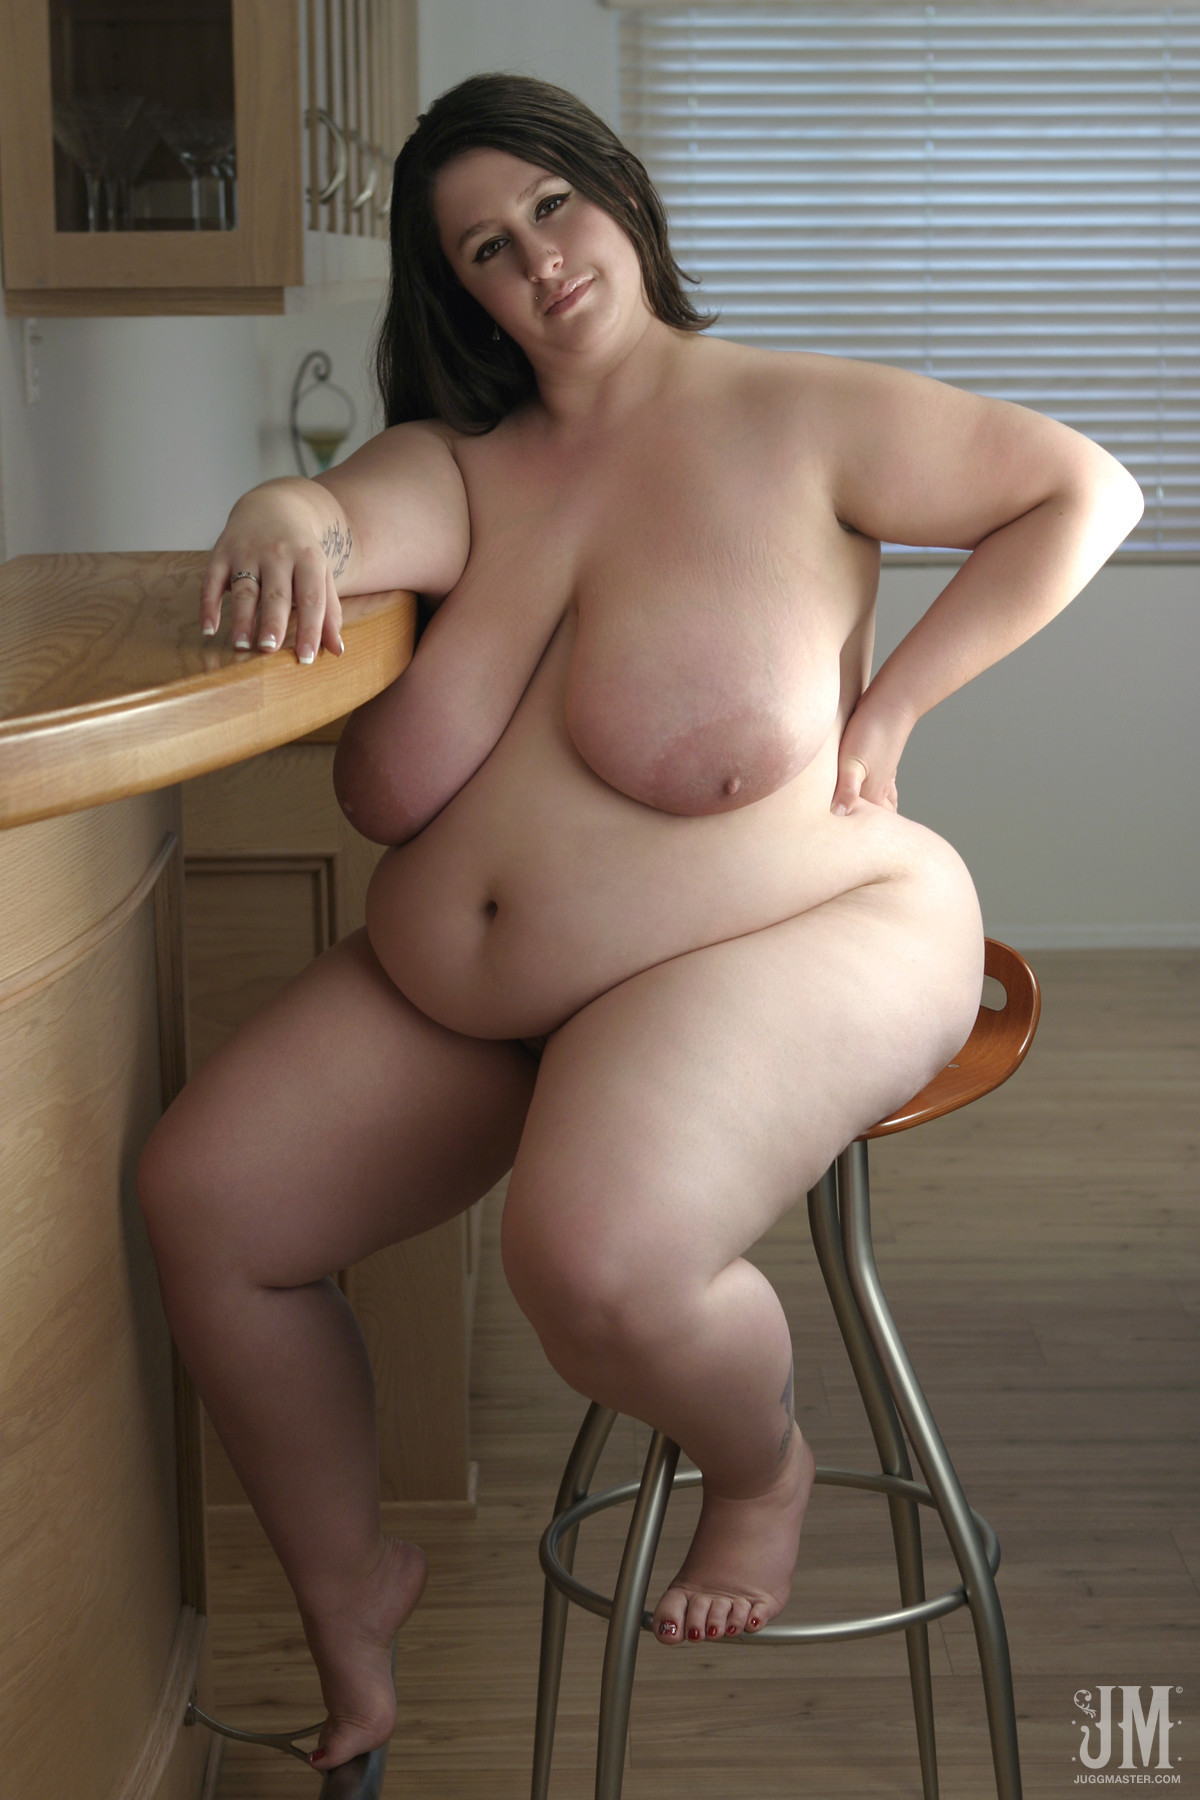 Chubby girls hottest